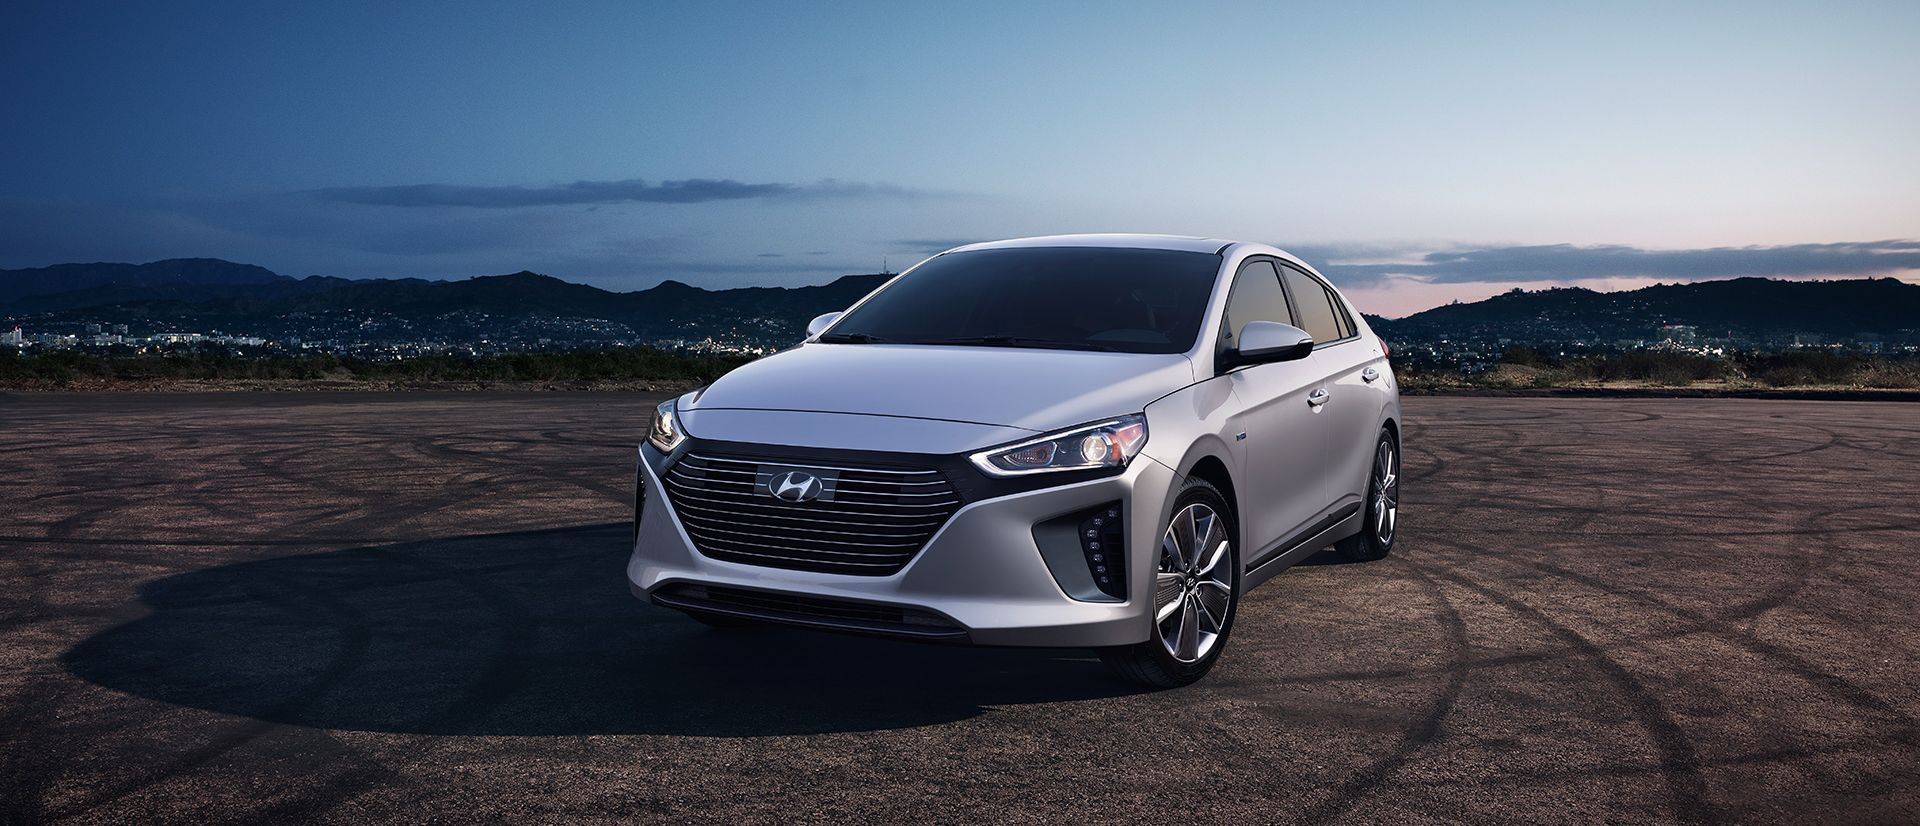 2017 Hyundai Ioniq Hybrid for Sale in Capitol Heights, MD